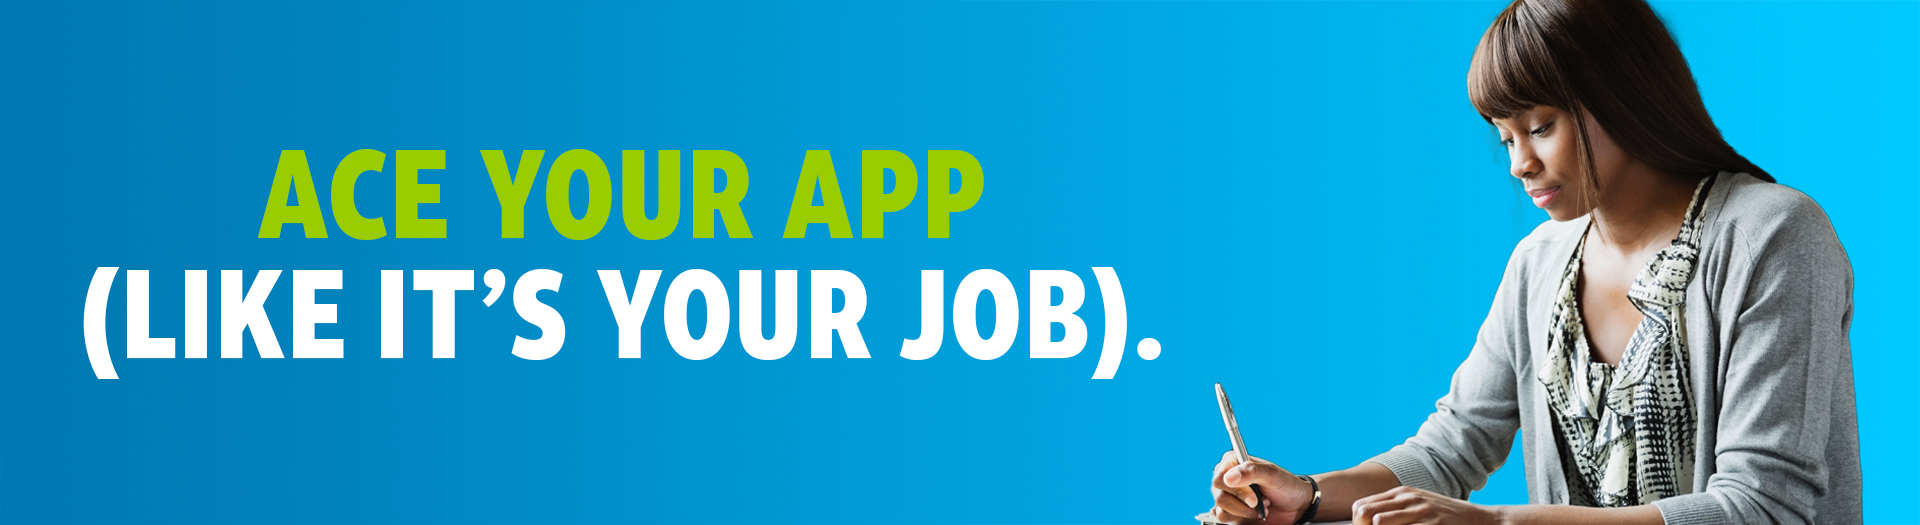 Ace your app (like it's your job). Image: woman holding a pen.